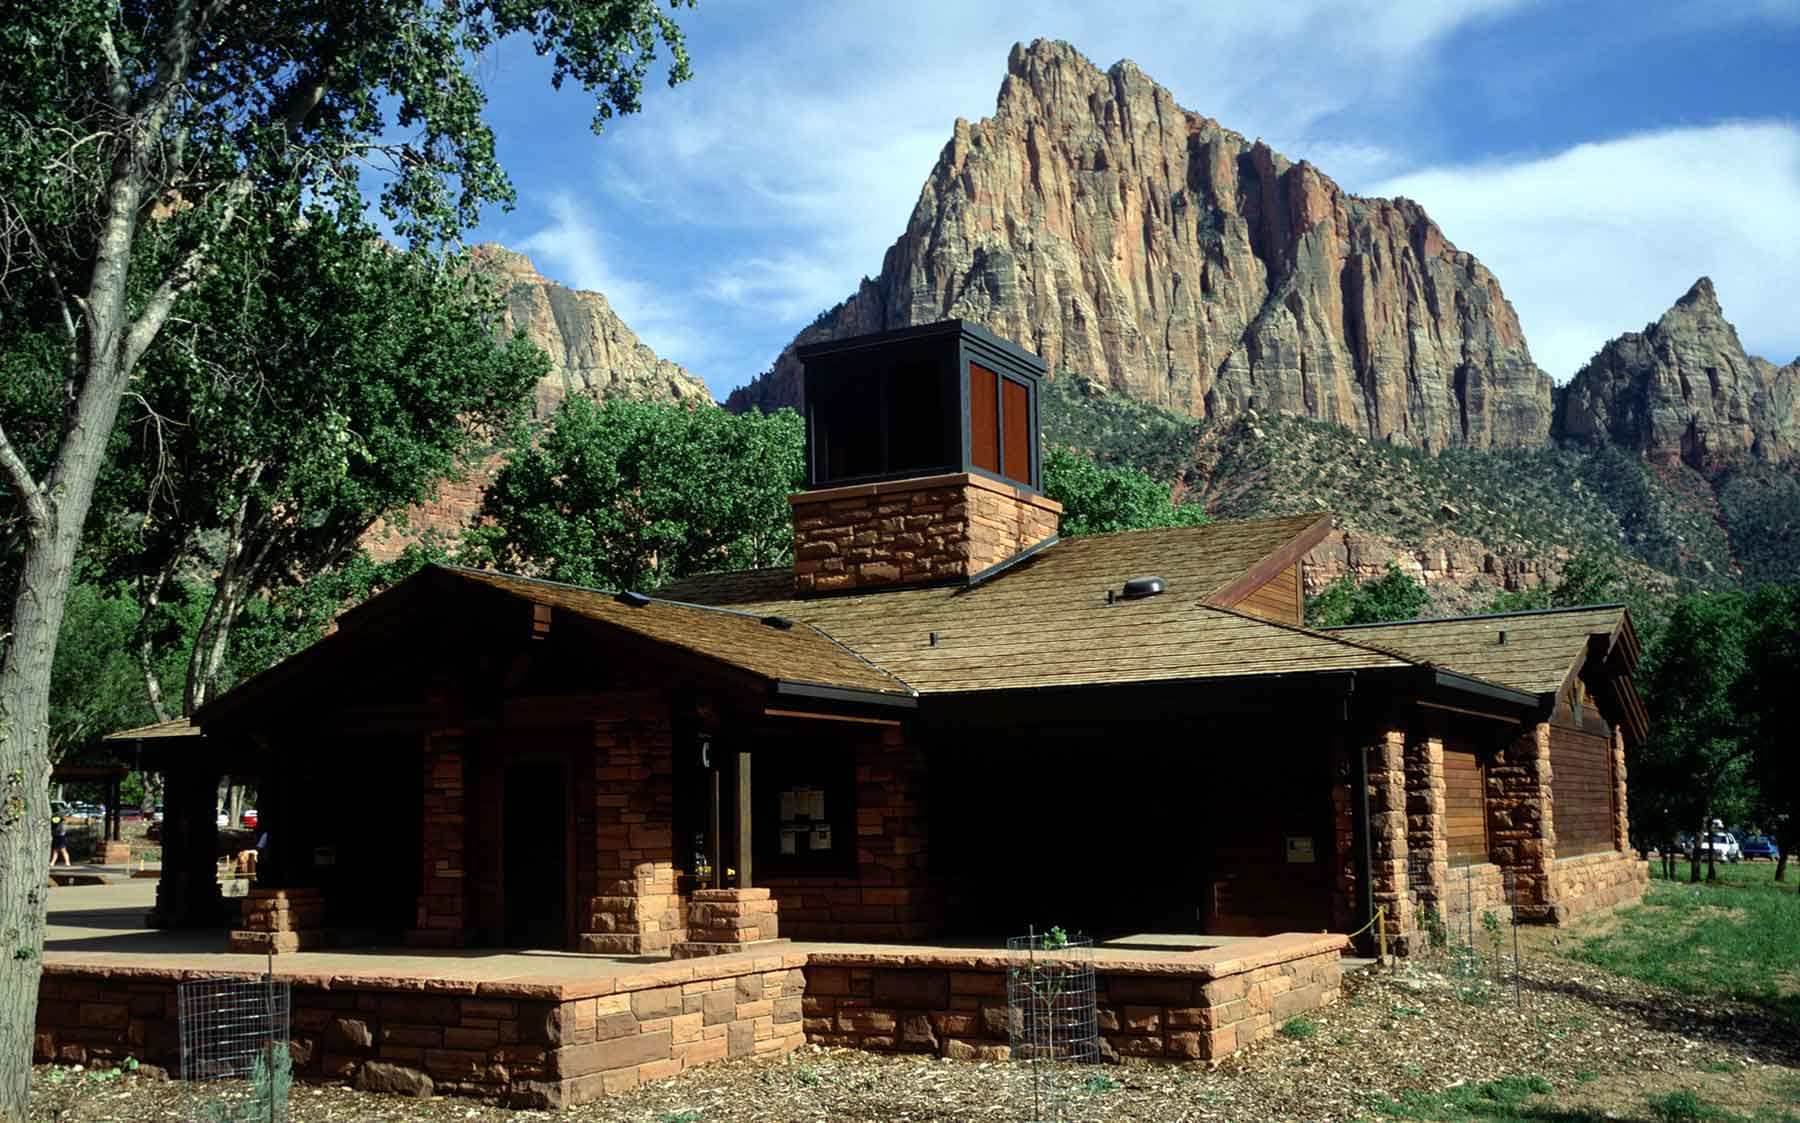 Photo of the sustainable visitor's center for Zion National Park